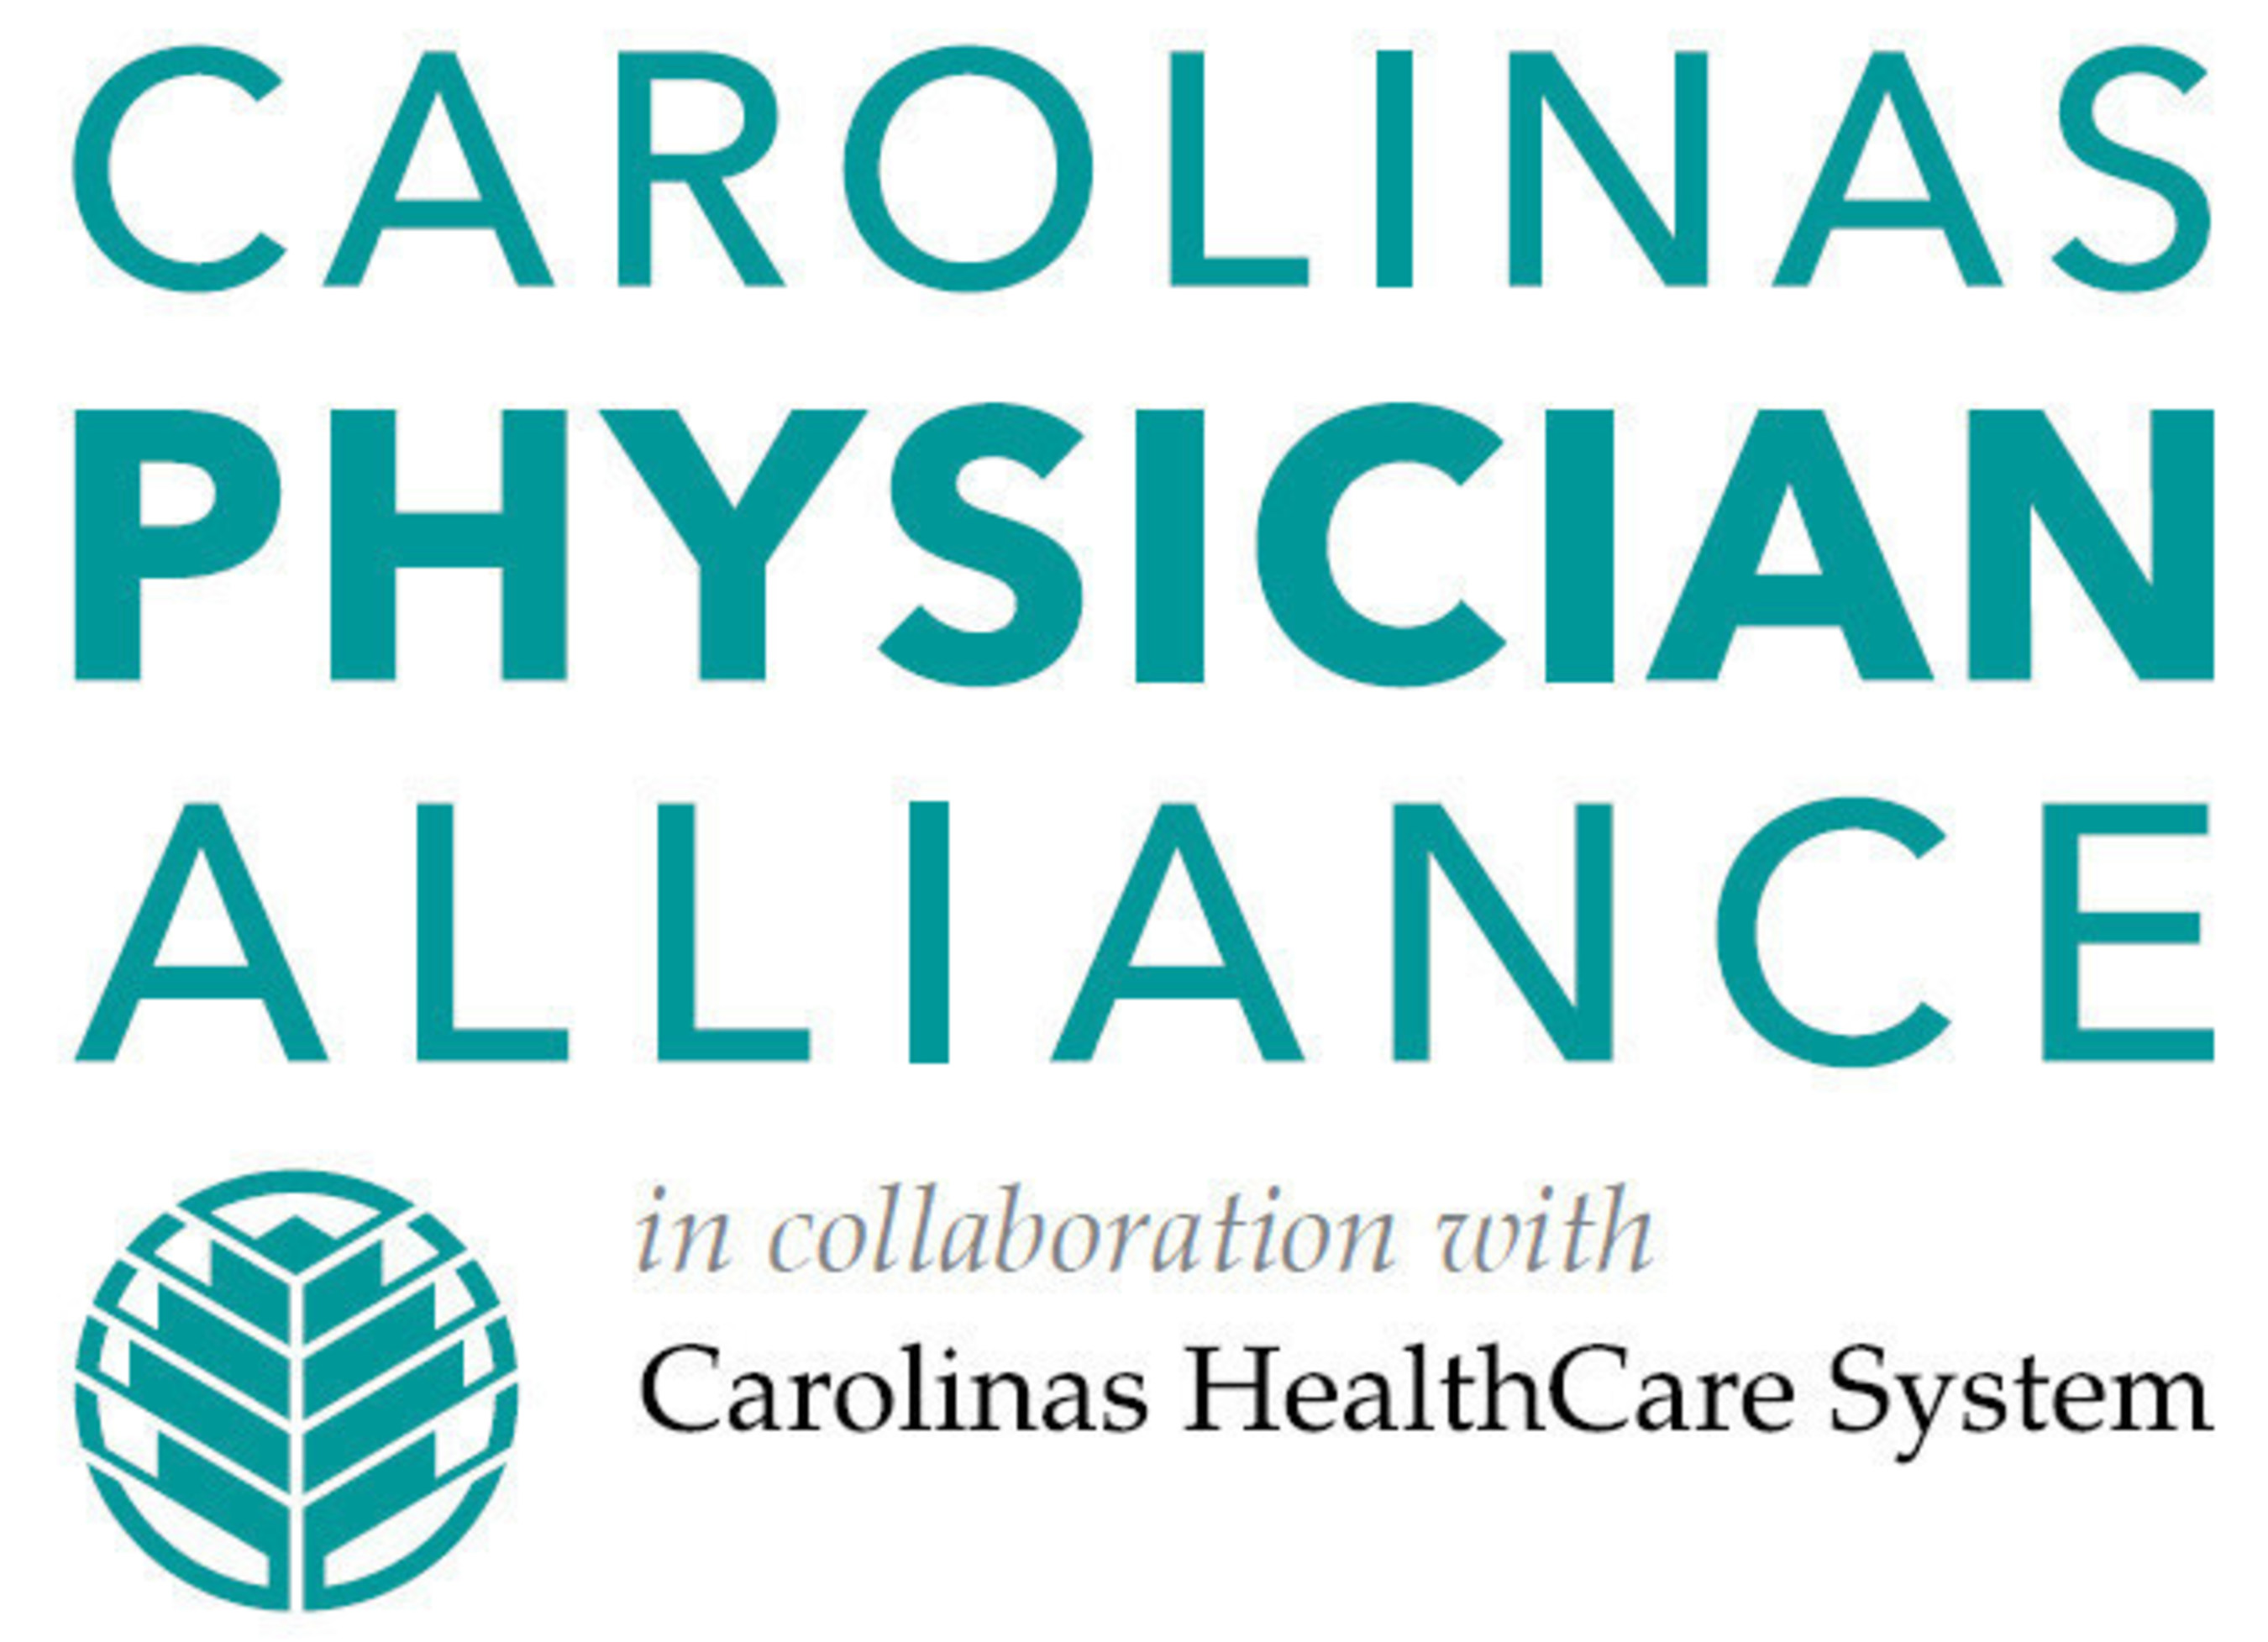 Carolinas Physician Alliance is Charlotte regions first clinically integrated network. It includes eight groups as well as Carolinas HealthCare System, 2,300 physicians and will operate in a 12-county region. Initial focus areas of the Carolinas Physician Alliance will include improving clinical efficiencies, avoiding unnecessary treatments and unplanned readmissions, cost-of-care reductions, and chronic disease management such as diabetes, asthma and preventative screenings.